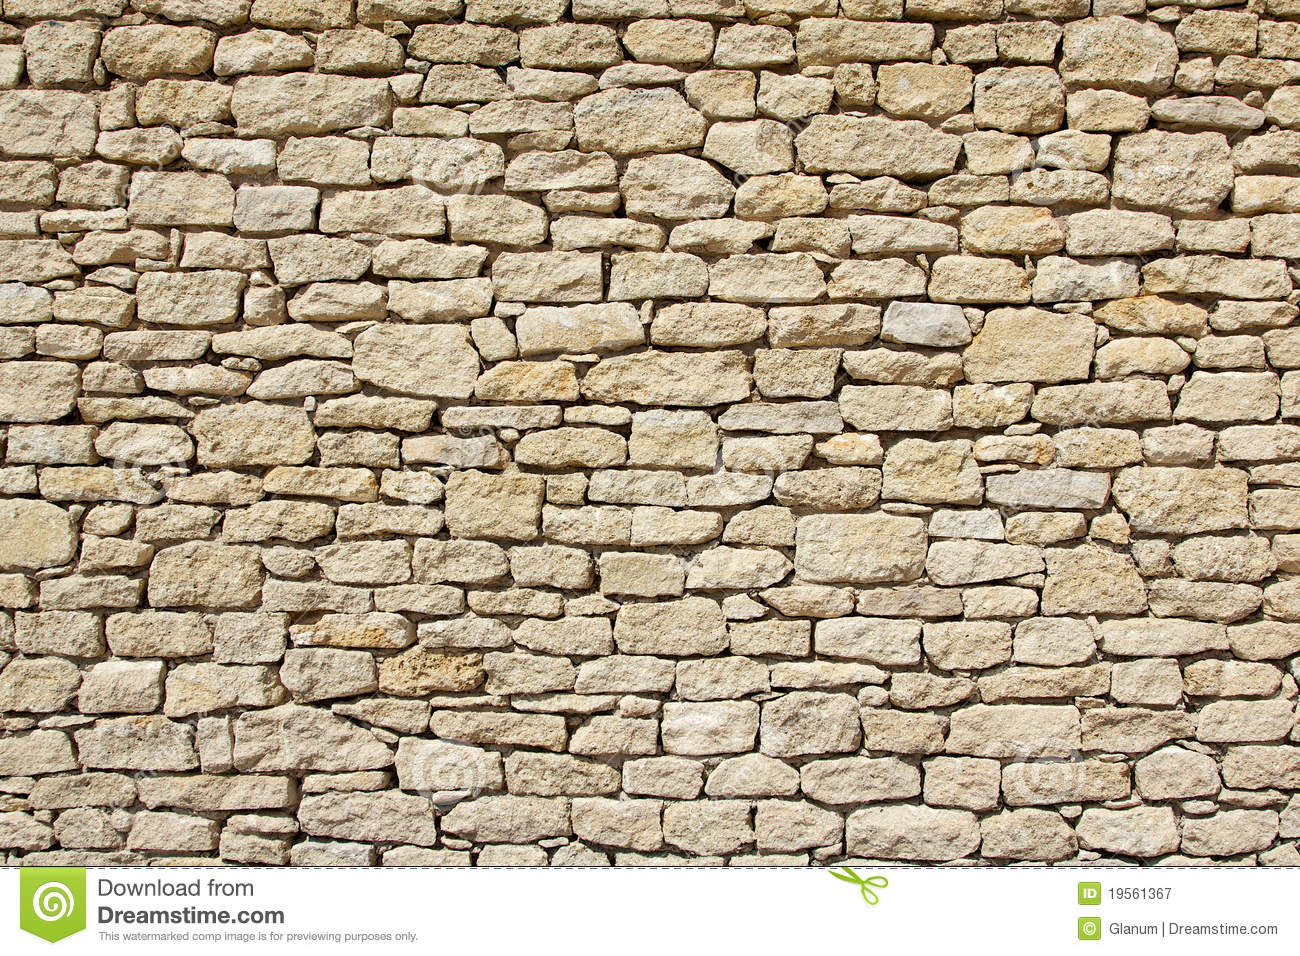 Cobblestone Clip Art : Stone wall clipart suggest